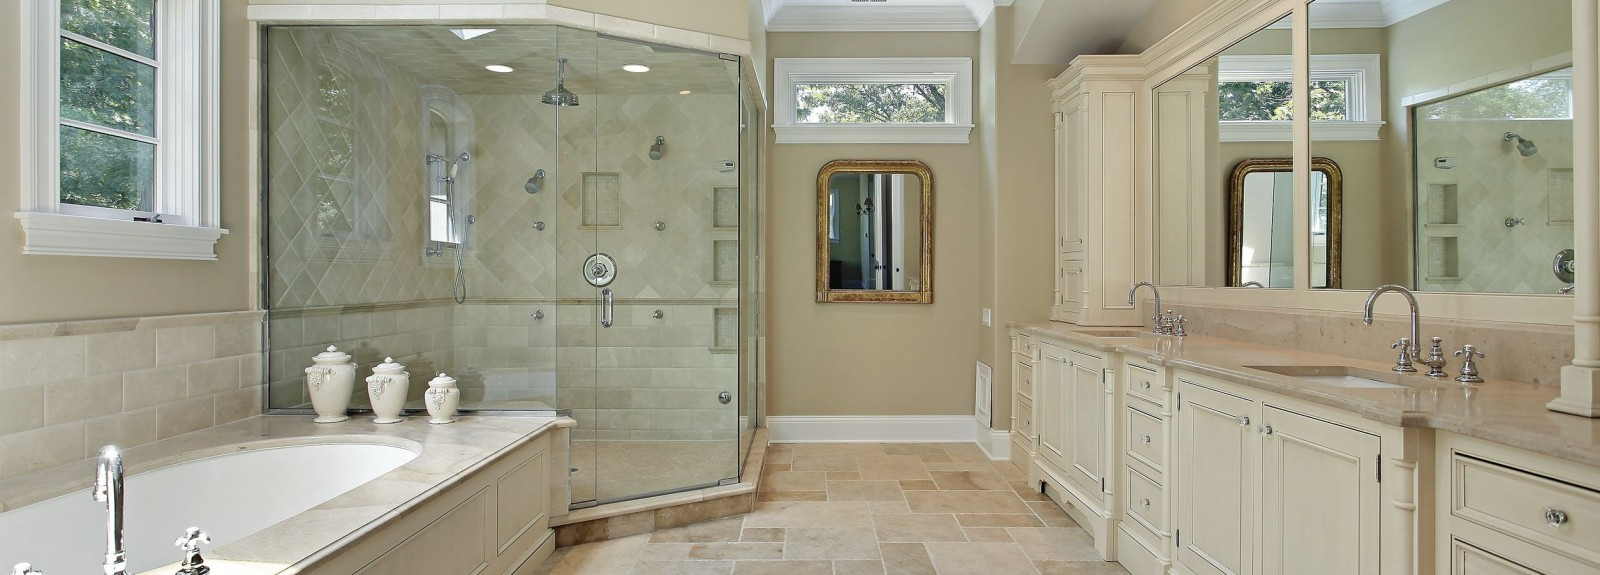 We can design and deliver this kind of spacious full gorgeous bathroom…